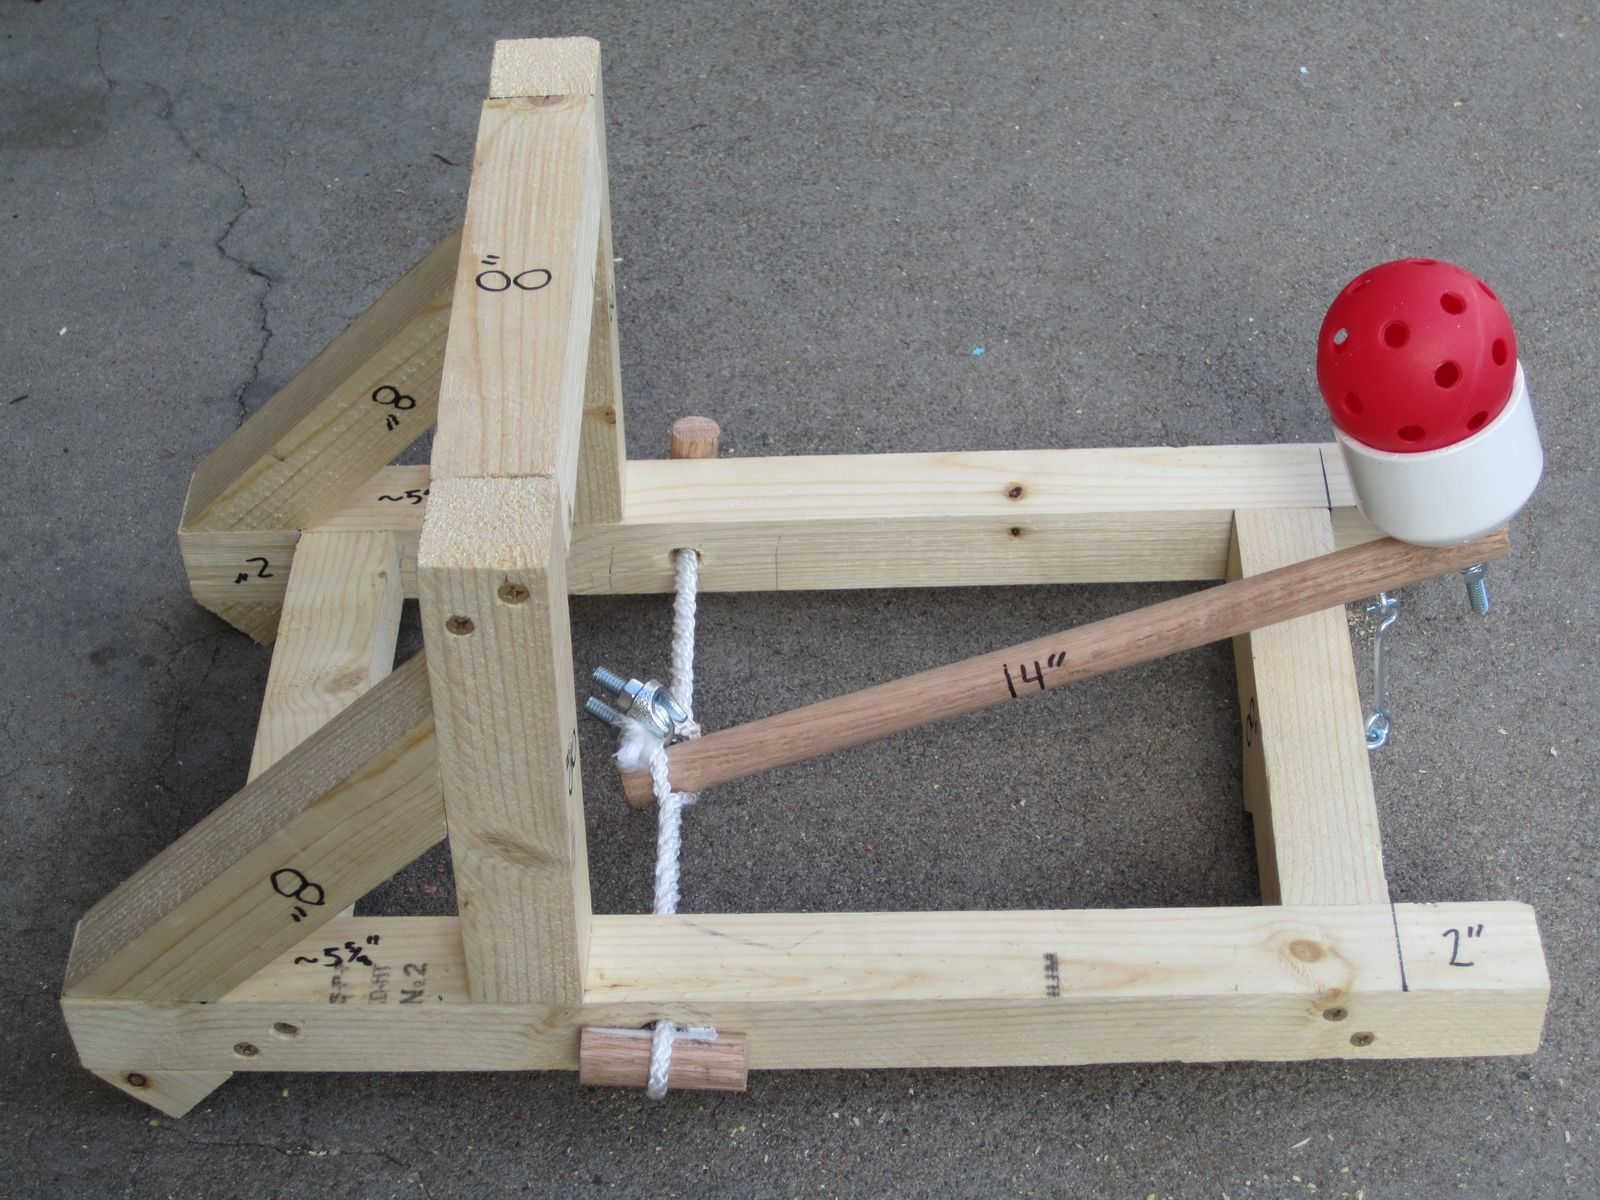 How+To+Build+A+Catapult Daddy For Life: Project: Build a Catapult